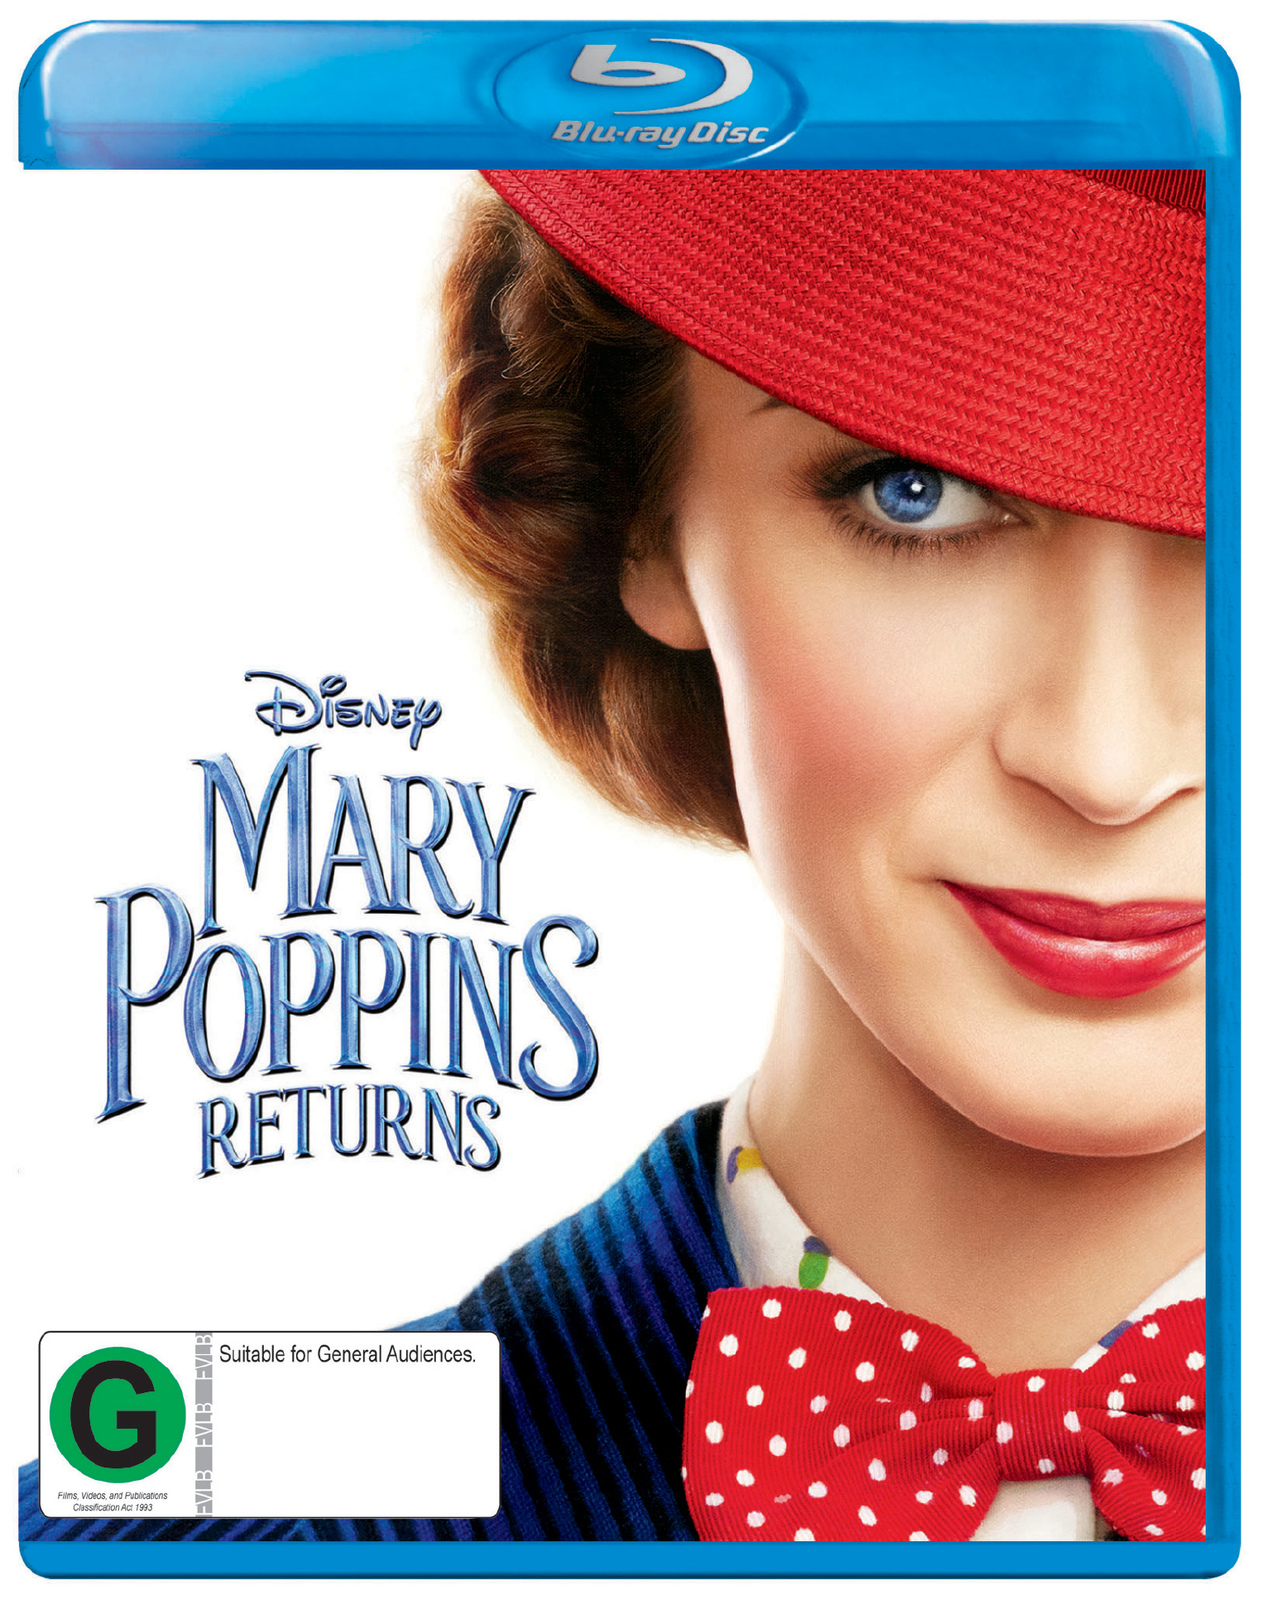 Mary Poppins Returns on Blu-ray image